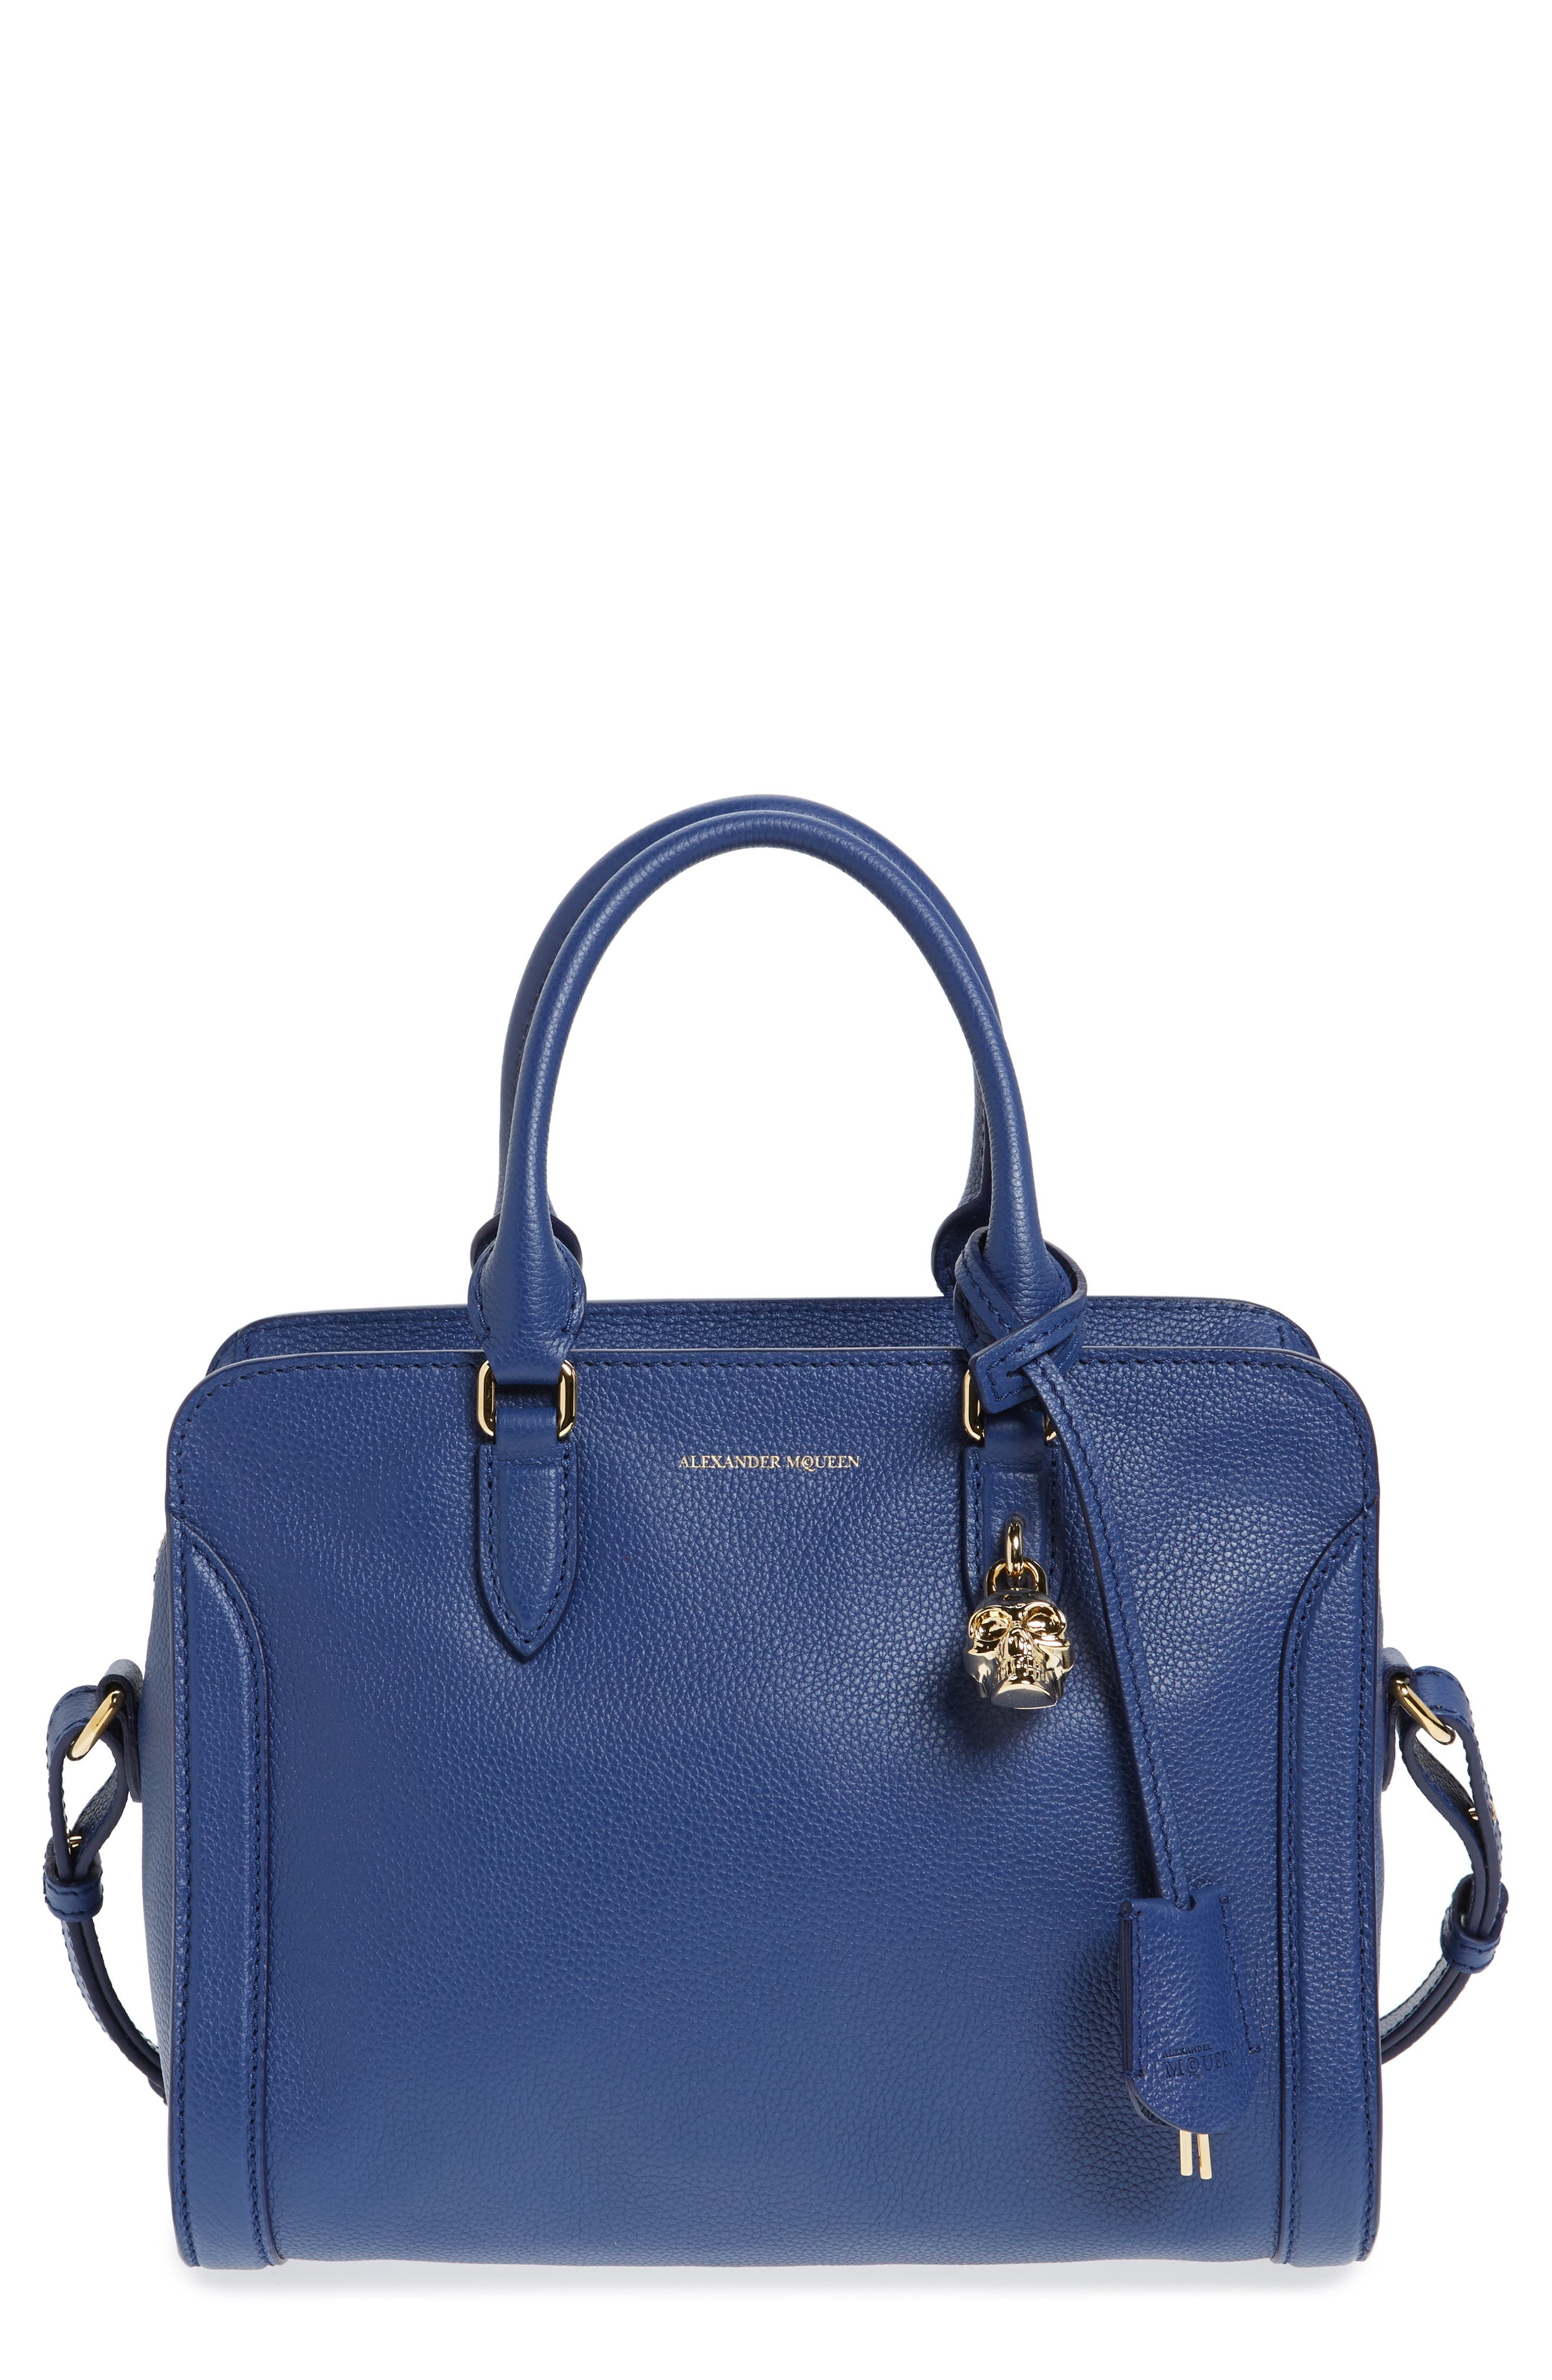 Alternate Image 1 Selected - Alexander McQueen 'Small Padlock' Calfskin Leather Duffel Bag